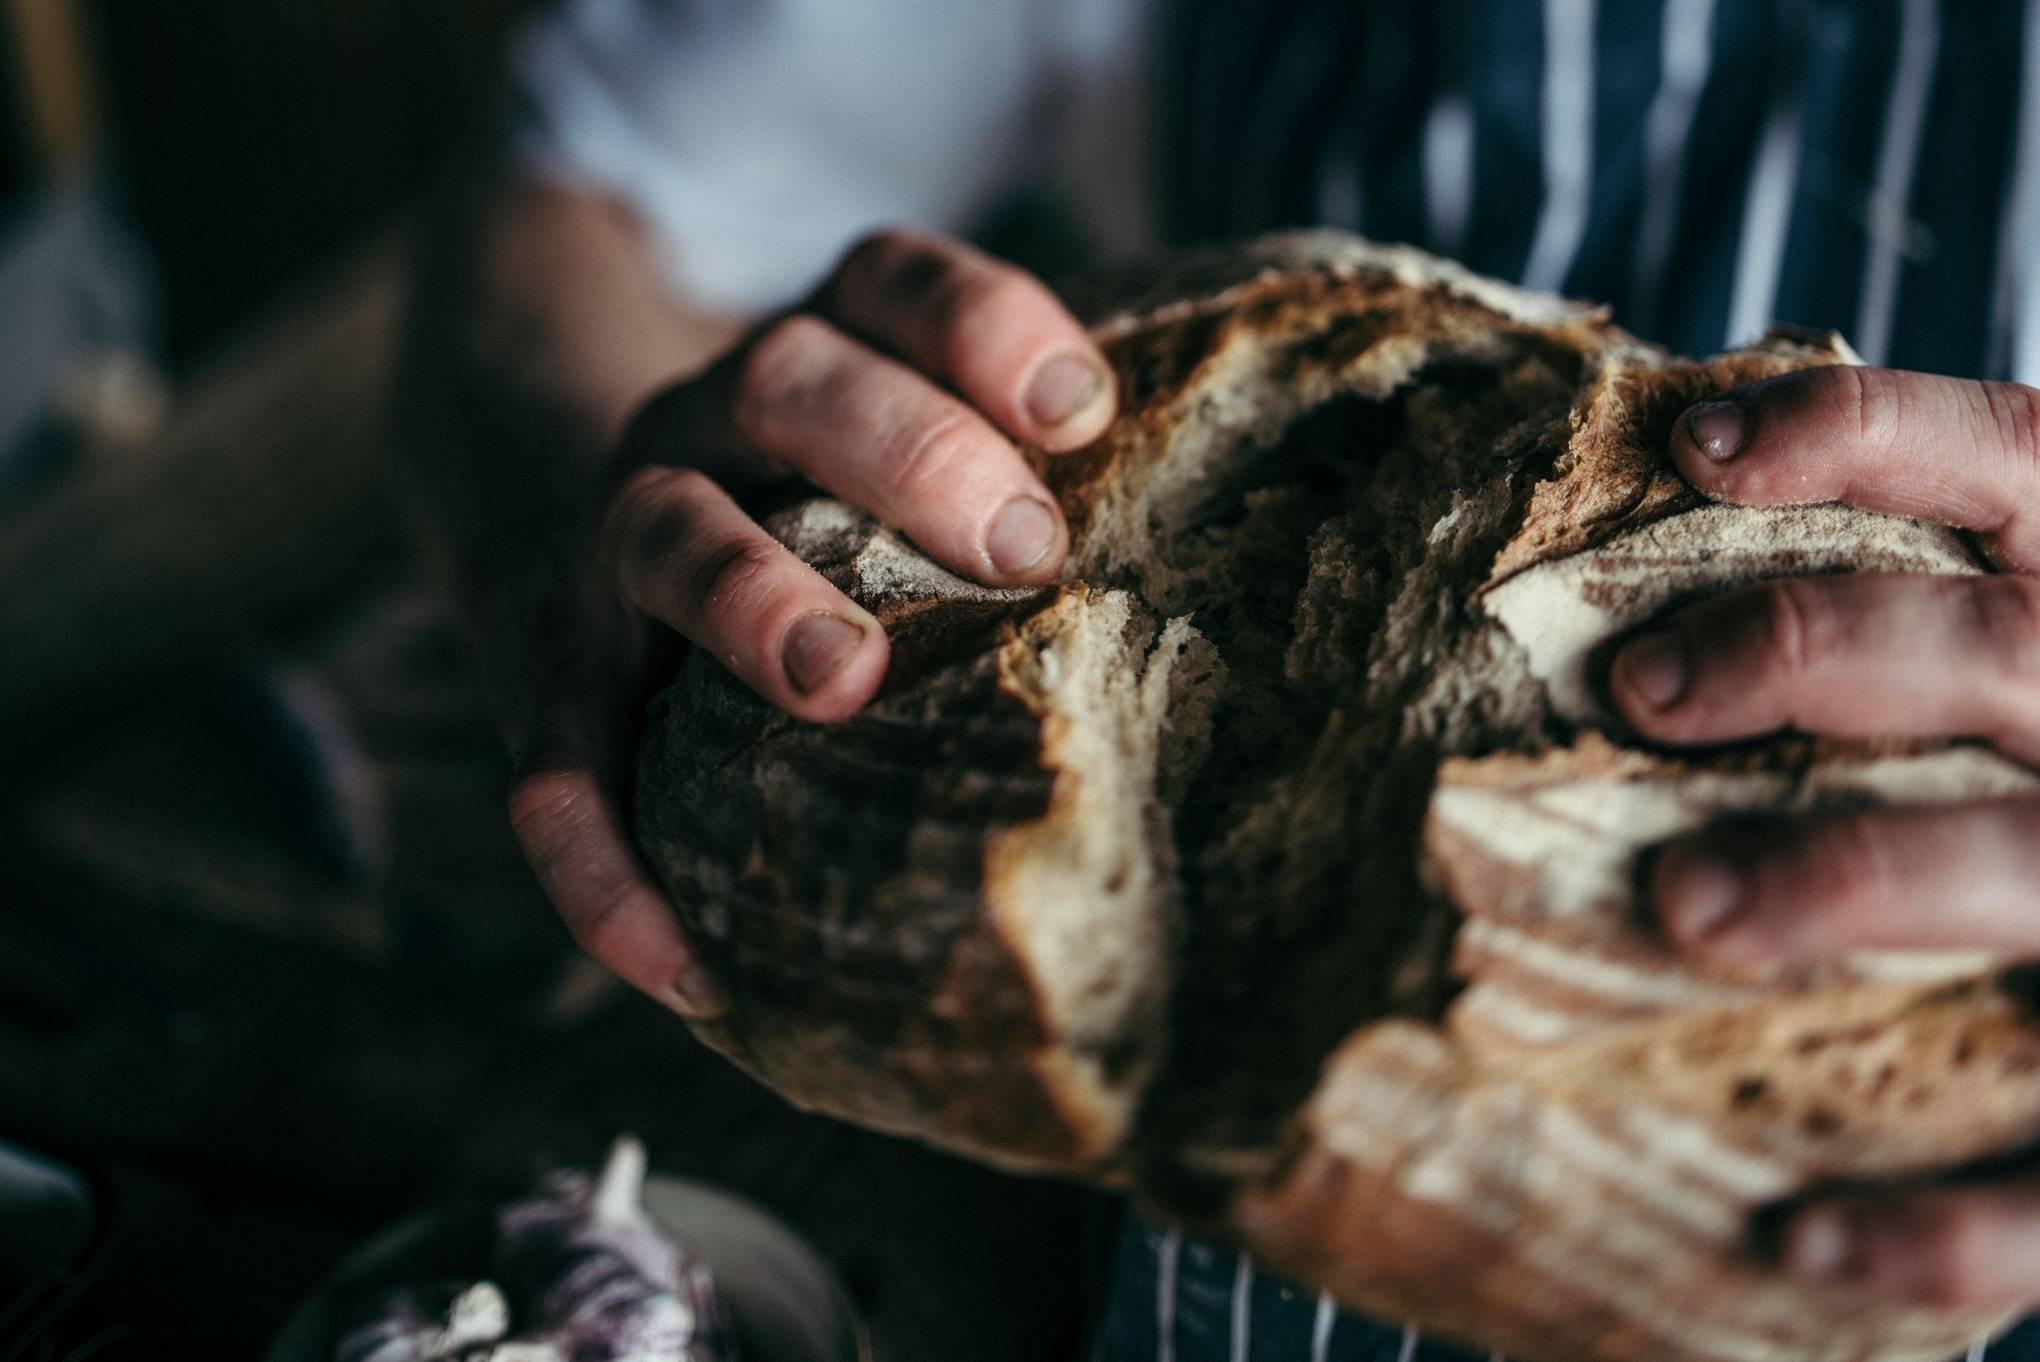 Cookery courses: breadmaking and oven building at River Cottage